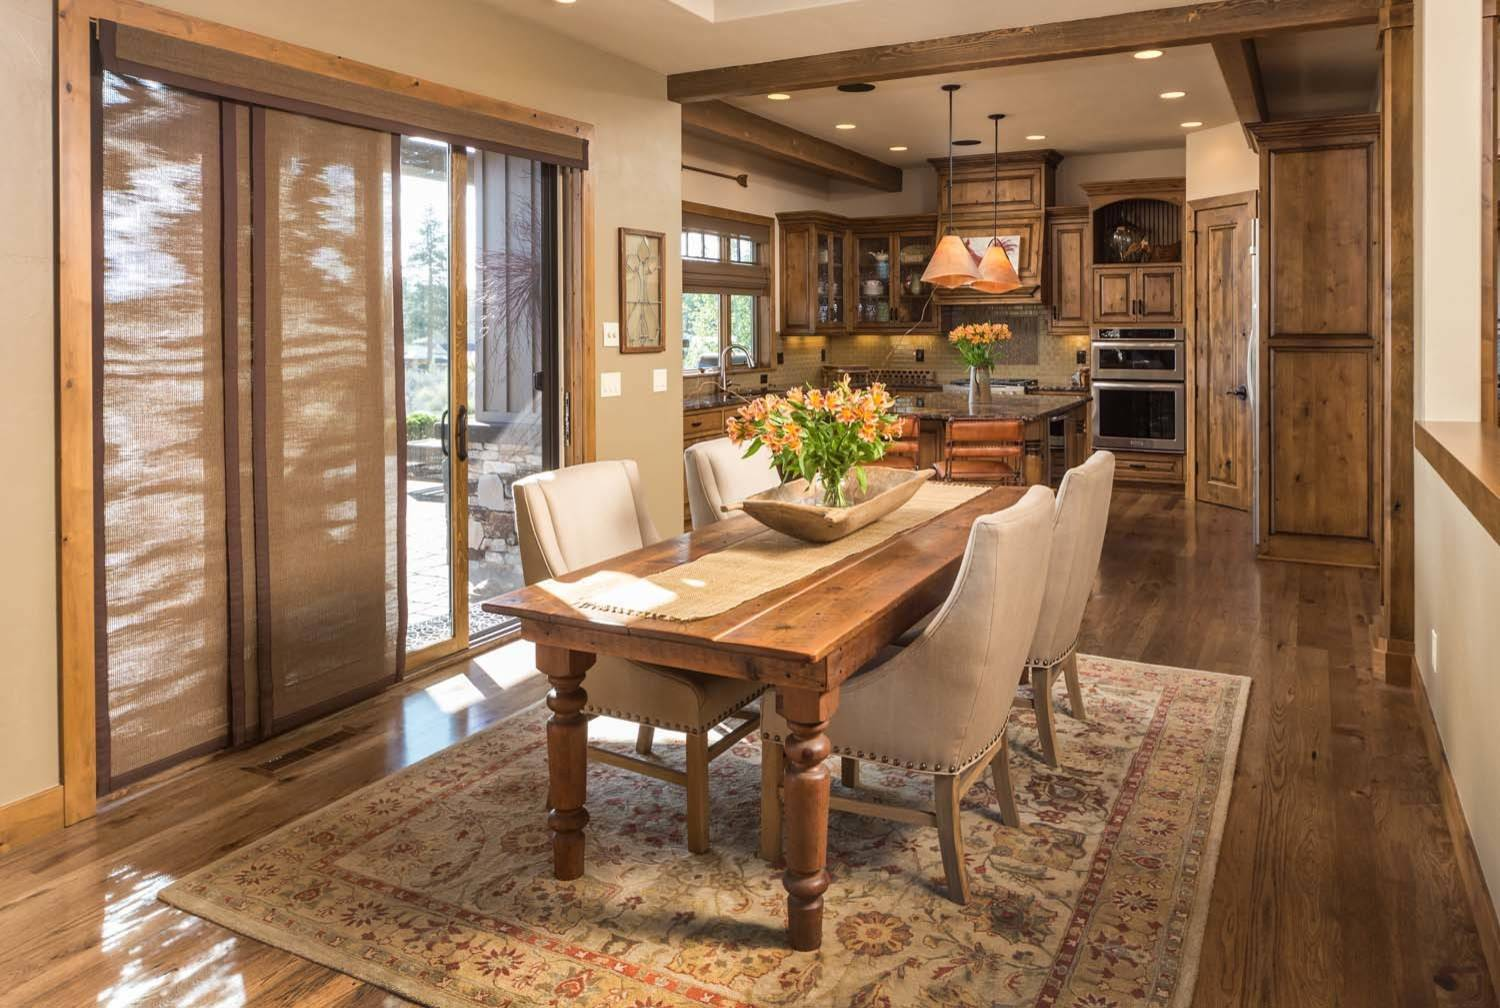 16 majestic rustic dining room designs you can t miss out on dining room inspiration id=38310